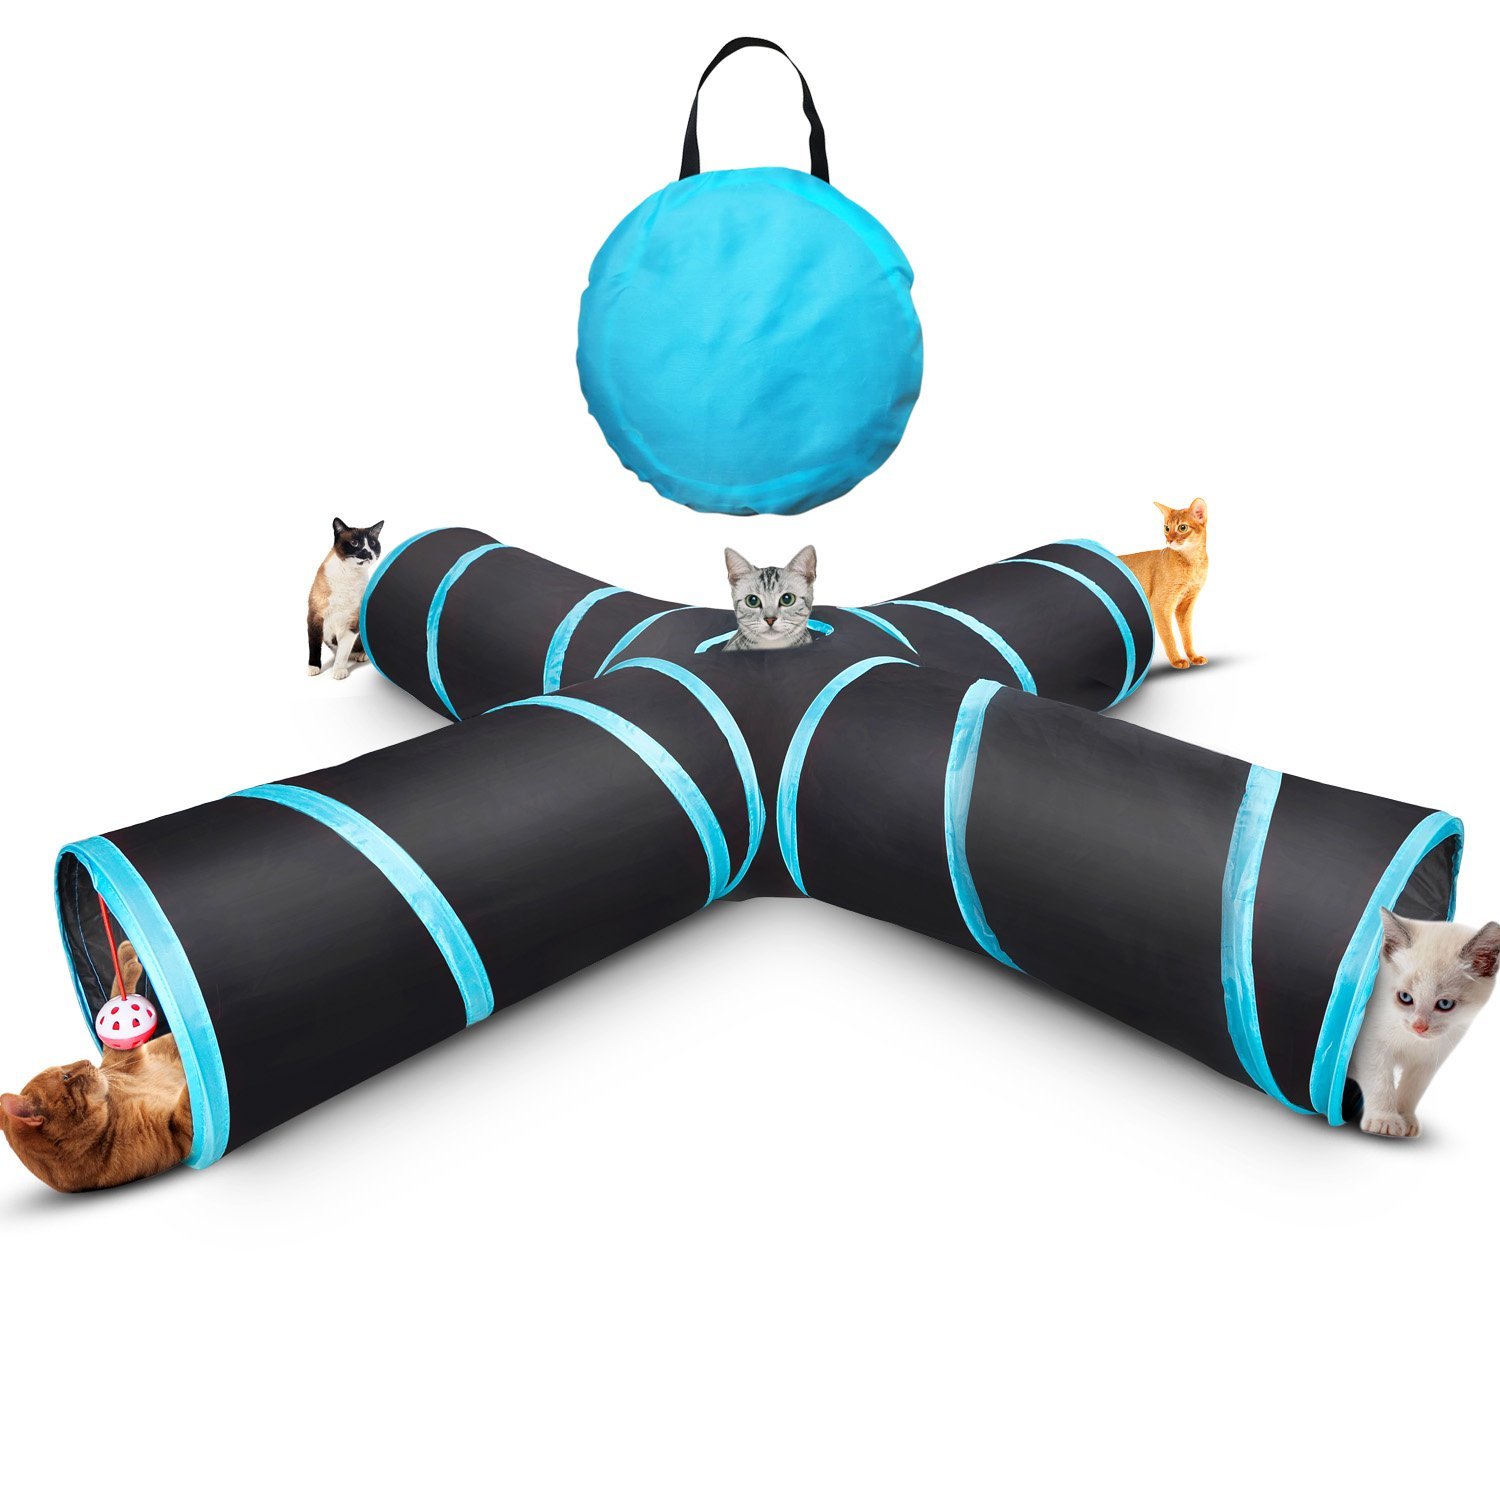 Myguru Cat Tunnel, Upgraded Collapsible 4 Way Crinkle Cat Toy Tube with Storage Bag & Catnip Toys for Large Cats,Dogs,Rabbits,Indoor/Outdoor Use (Large Size)